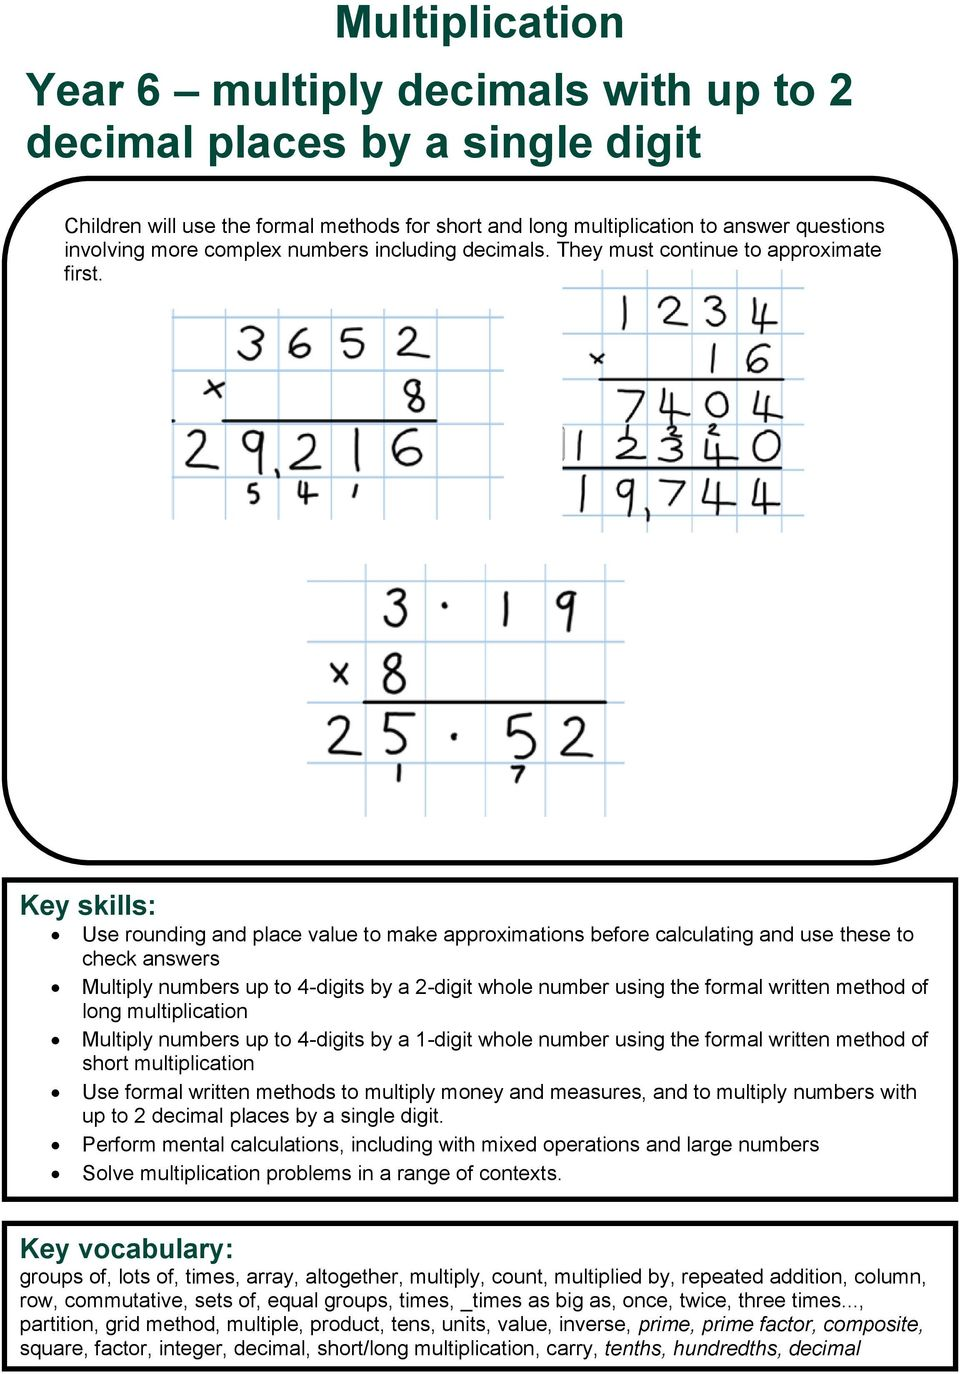 Use rounding and place value to make approximations before calculating and use these to check answers Multiply numbers up to 4-digits by a 2-digit whole number using the formal written method of long